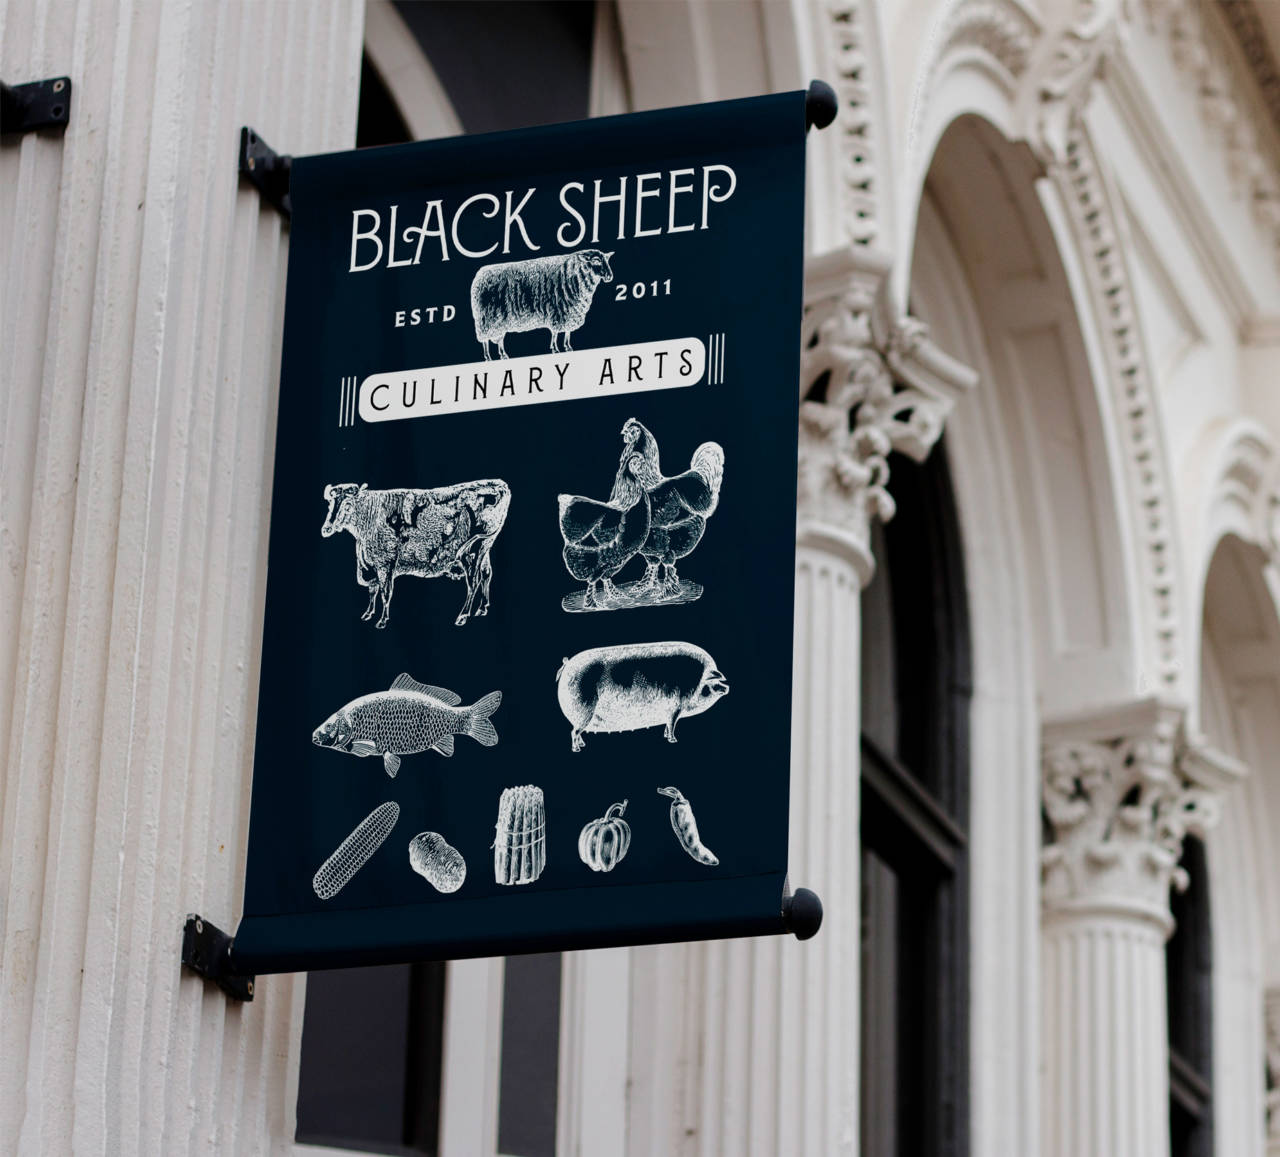 Black Sheep Rebrand Banner by David Brier